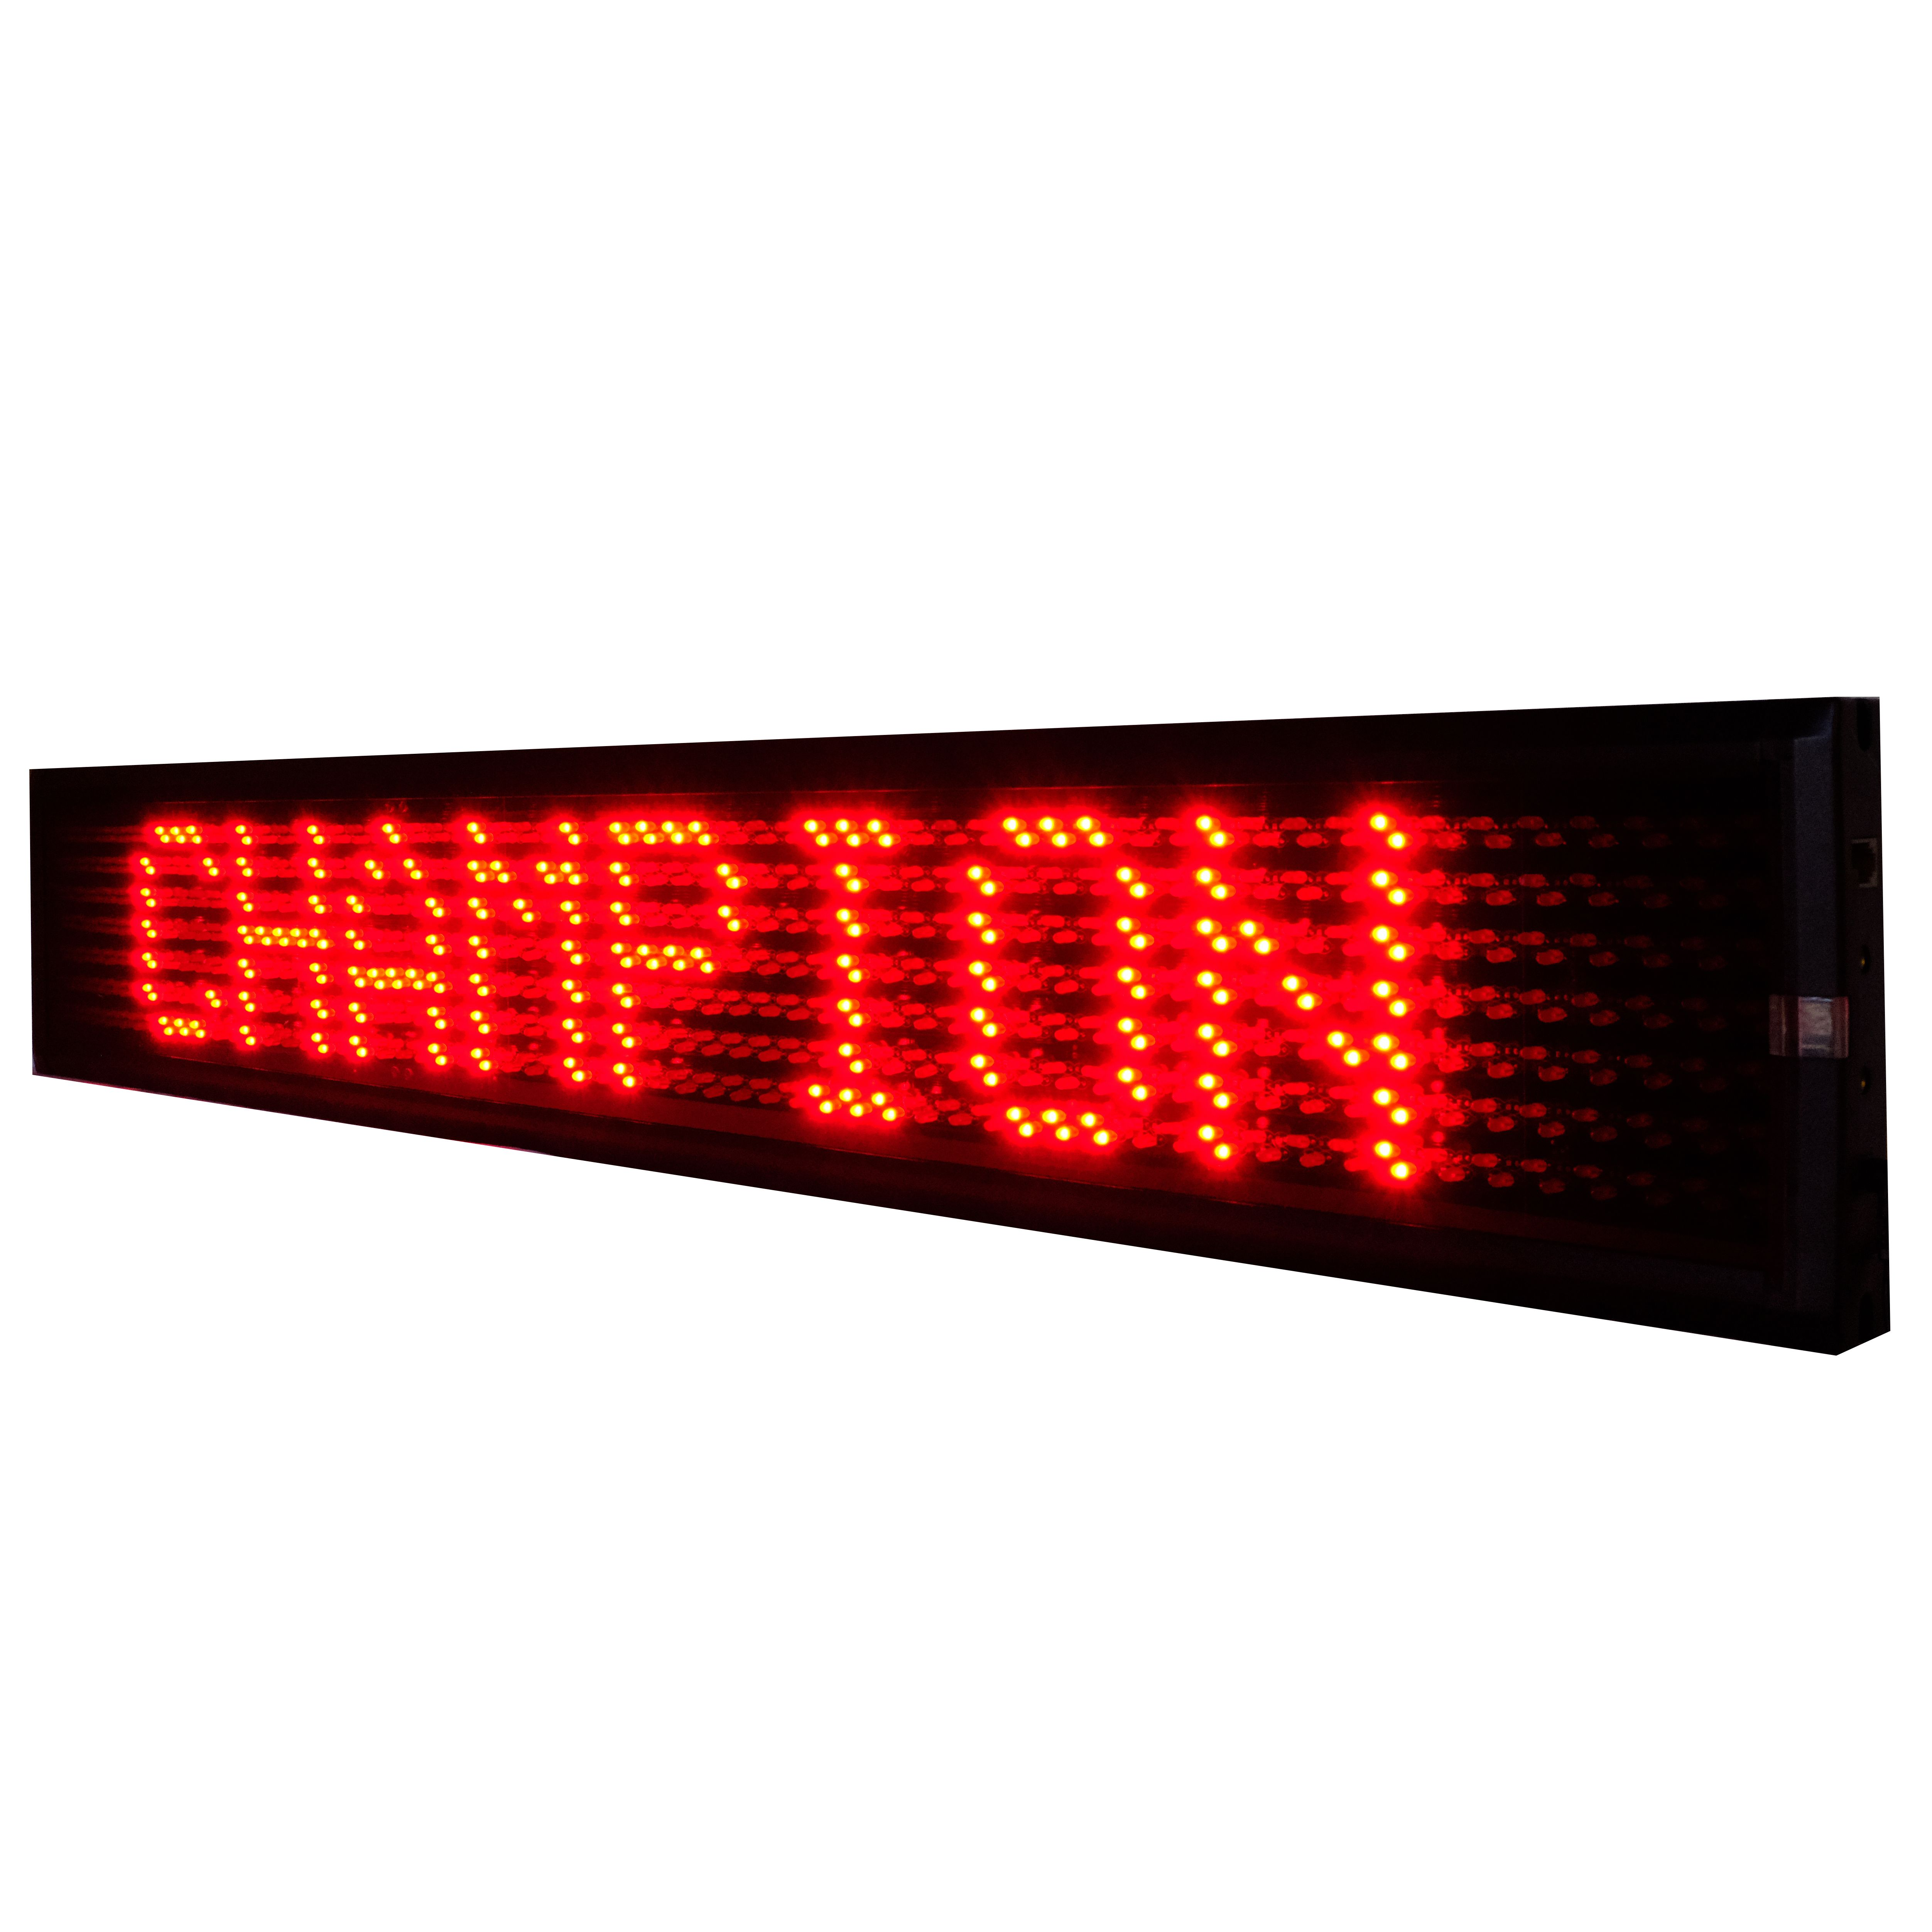 L-SERIES RED SINGLE LINE SEMI-OUTDOOR PROGRAMMABLE LED SIGN